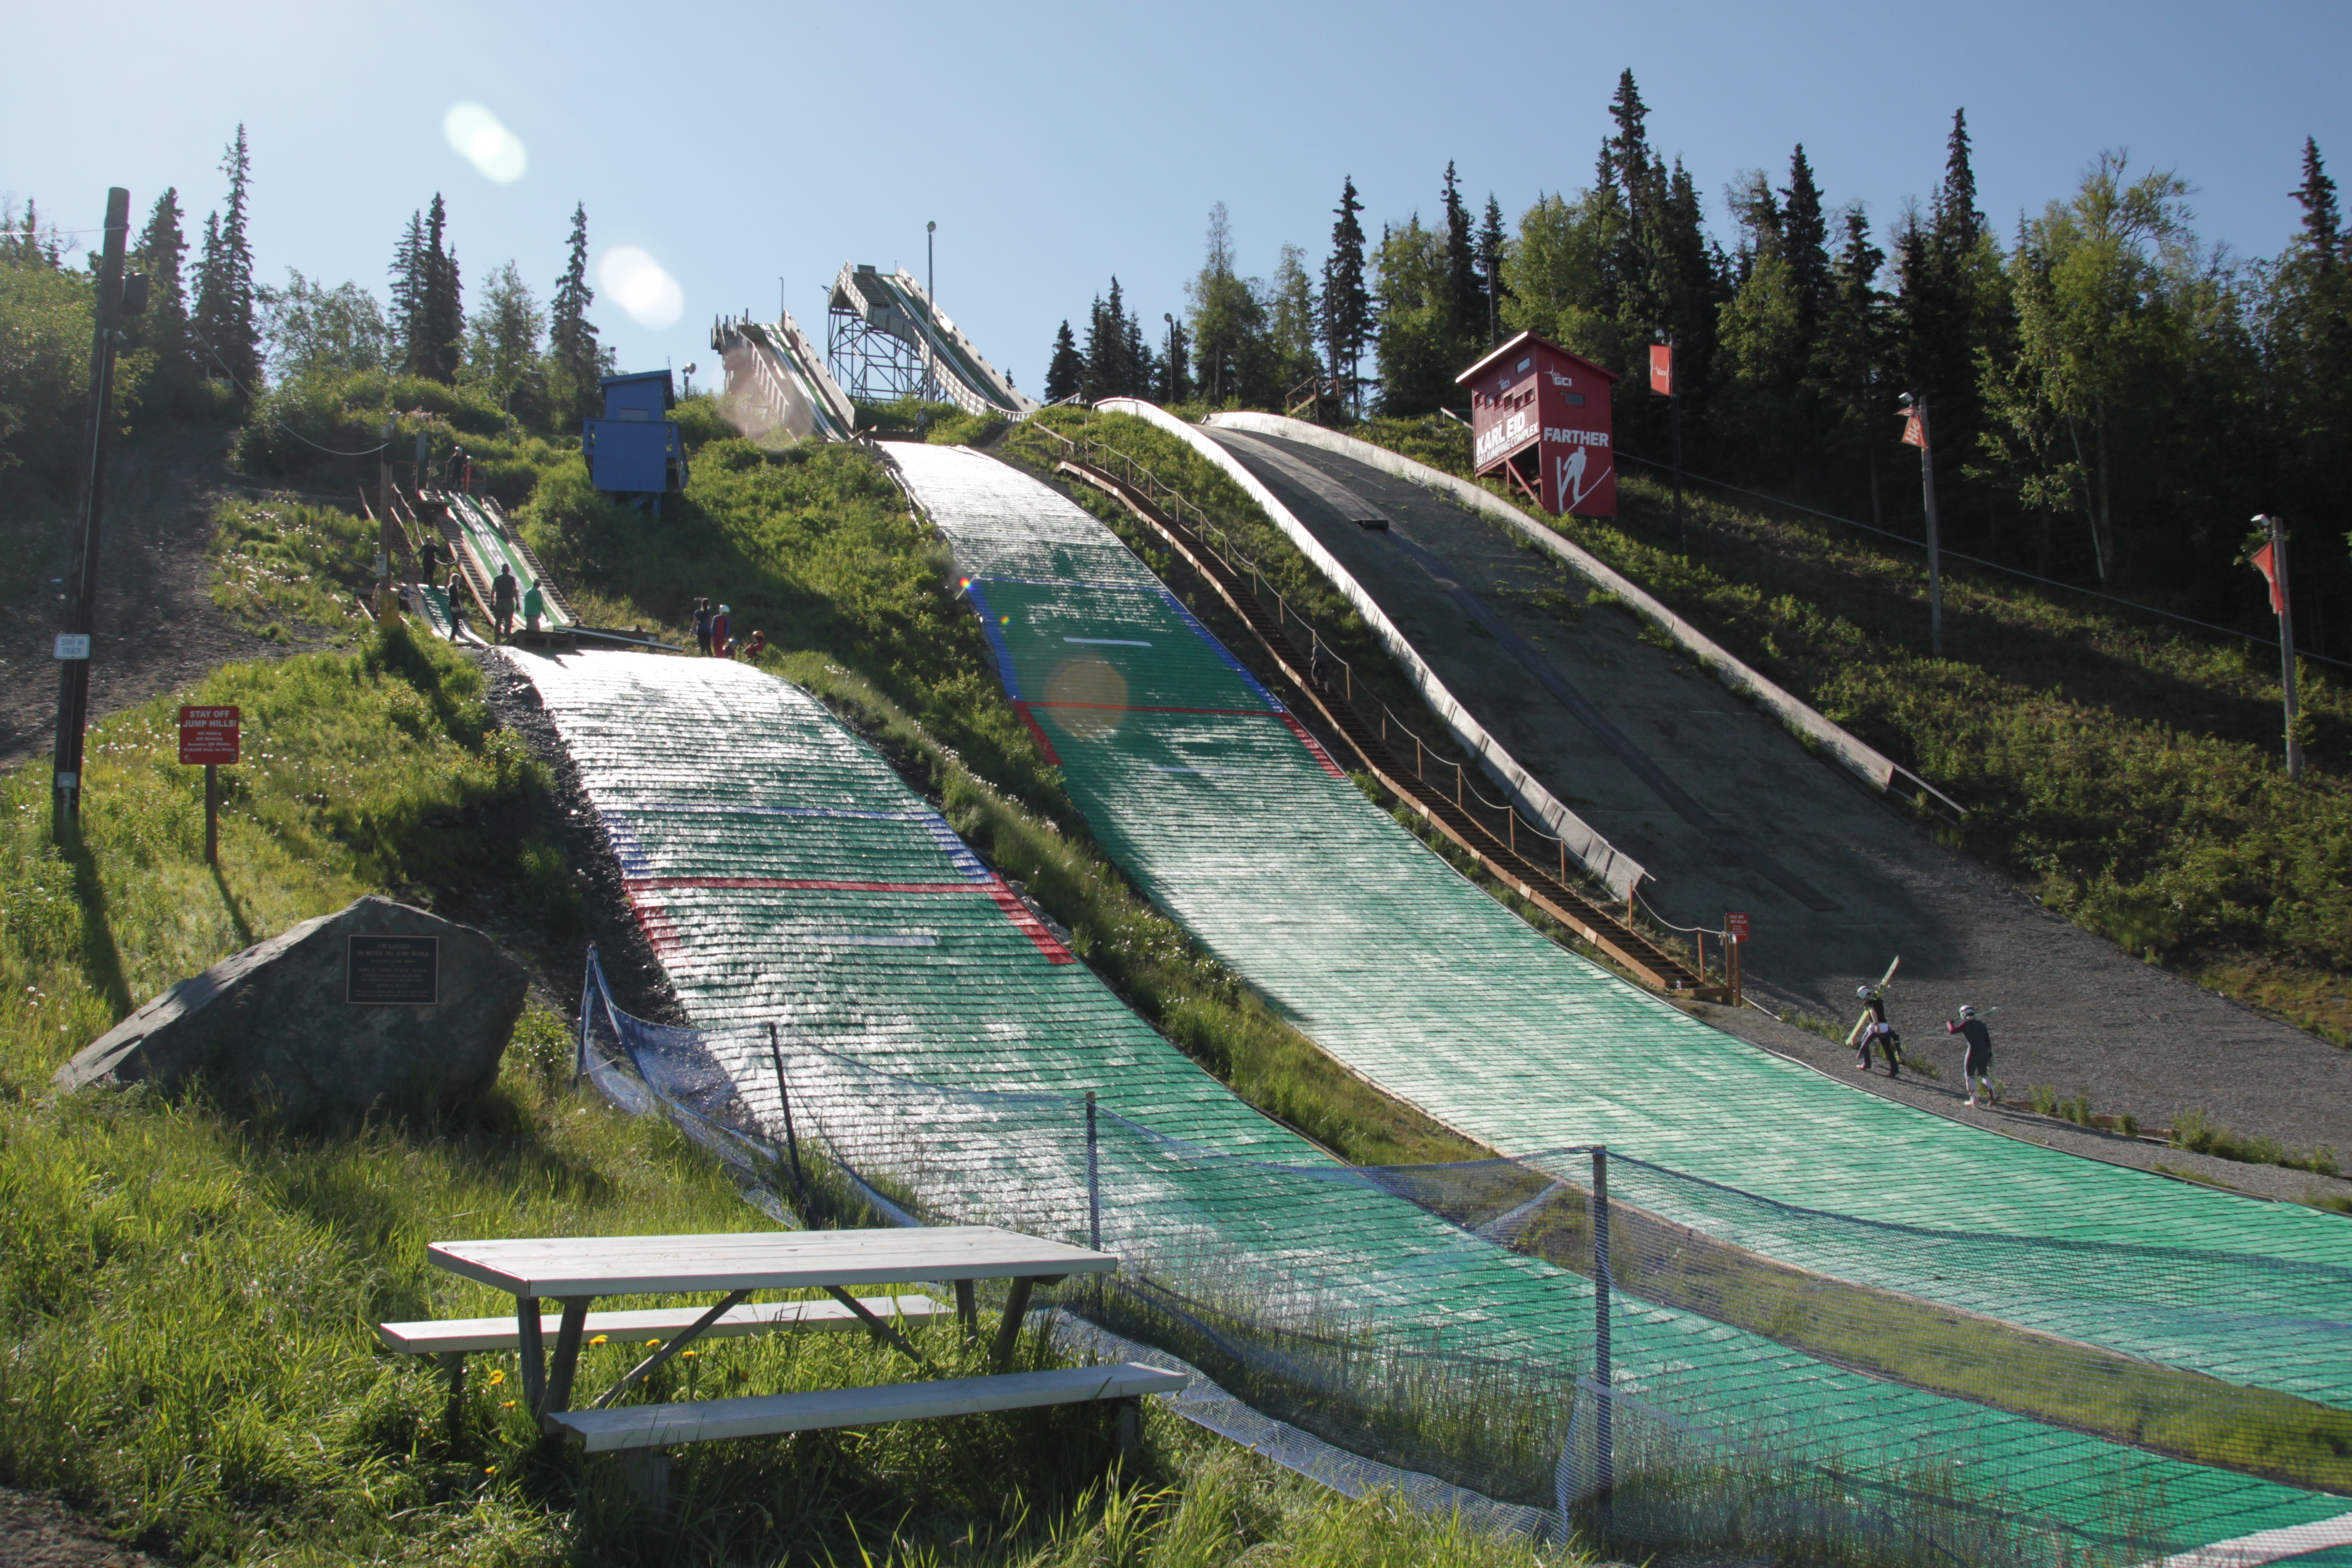 The Hilltop summer ski jump. (Photo by Ammon Swenson, Alaska Public Media - Anchorage)